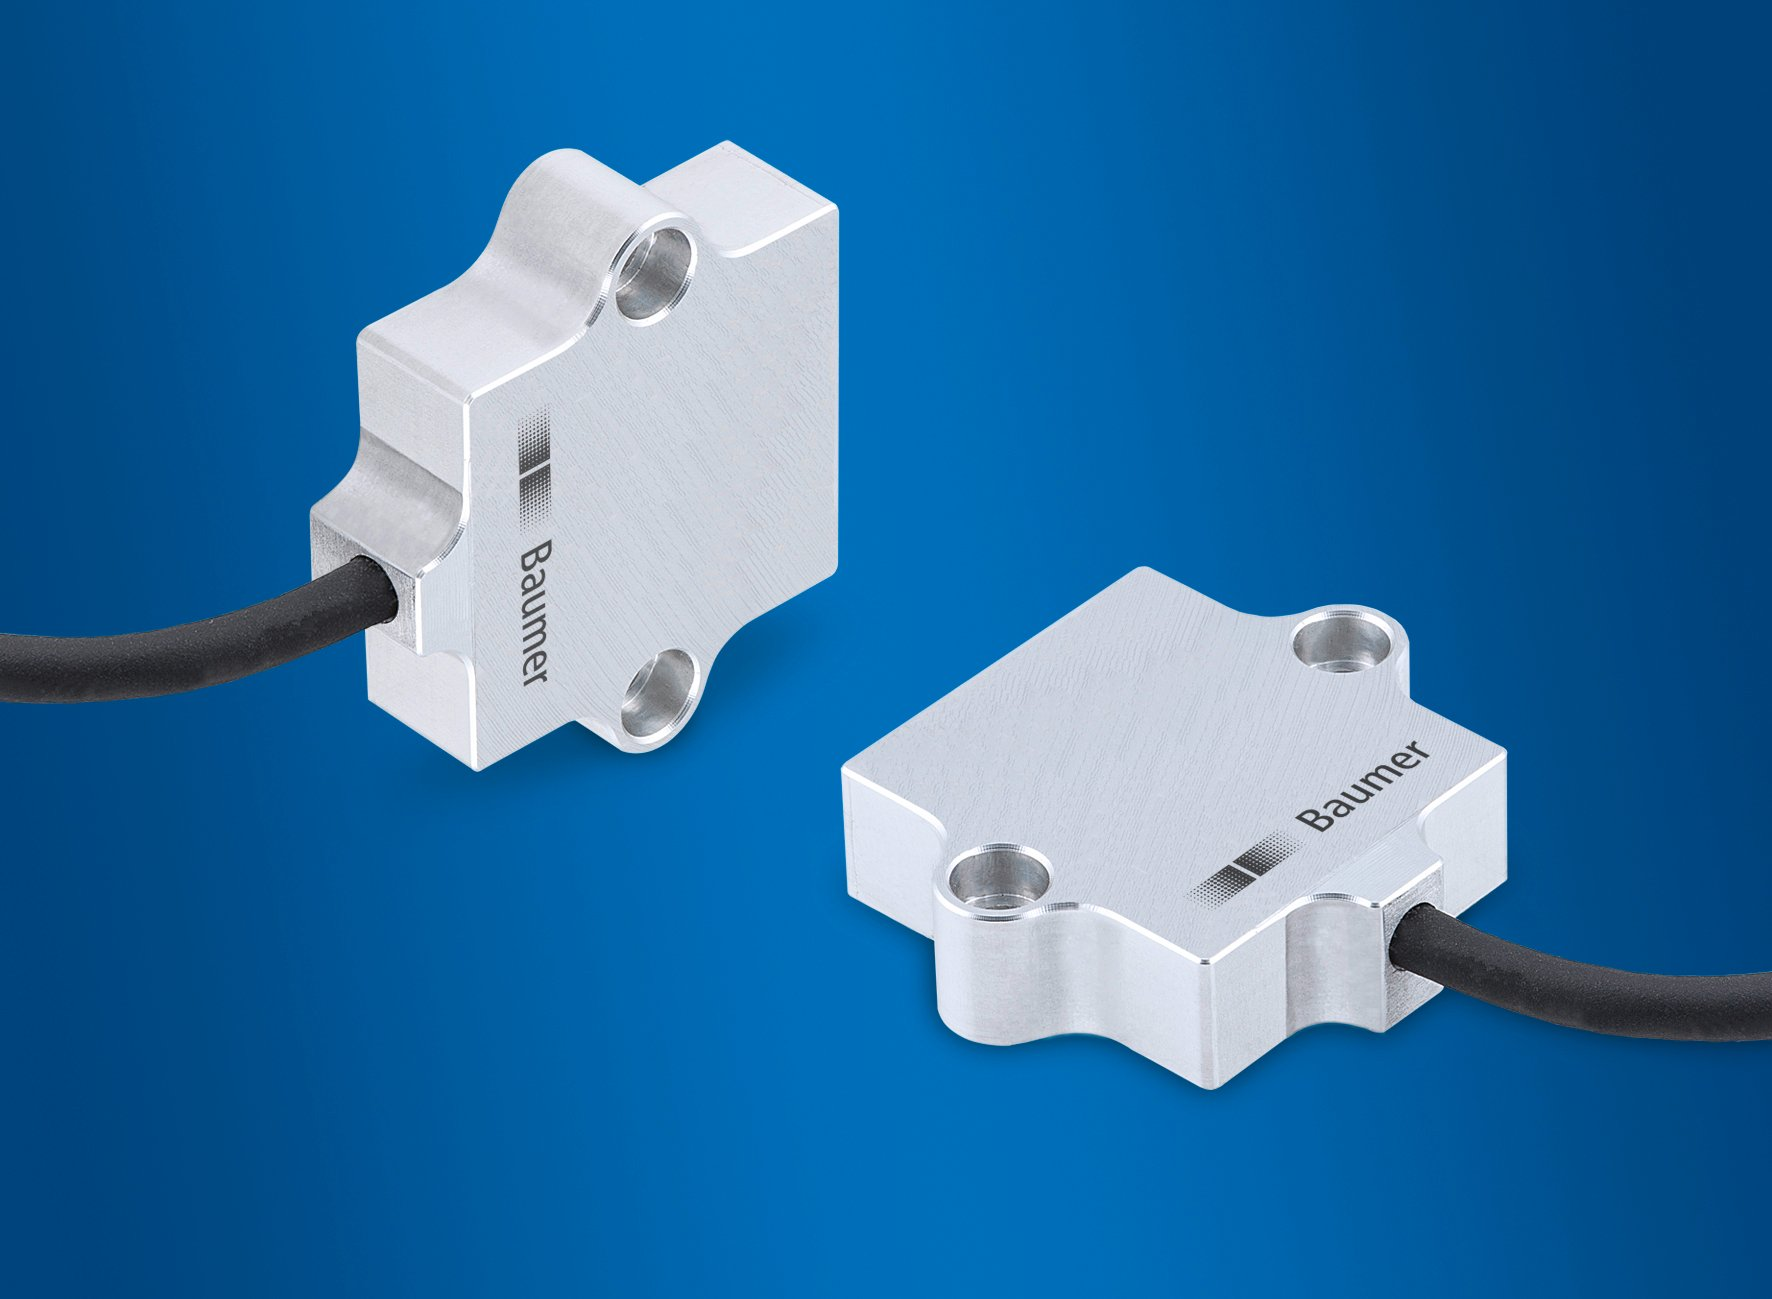 Compact inclination sensors for harsh outdoor conditions | Baumer